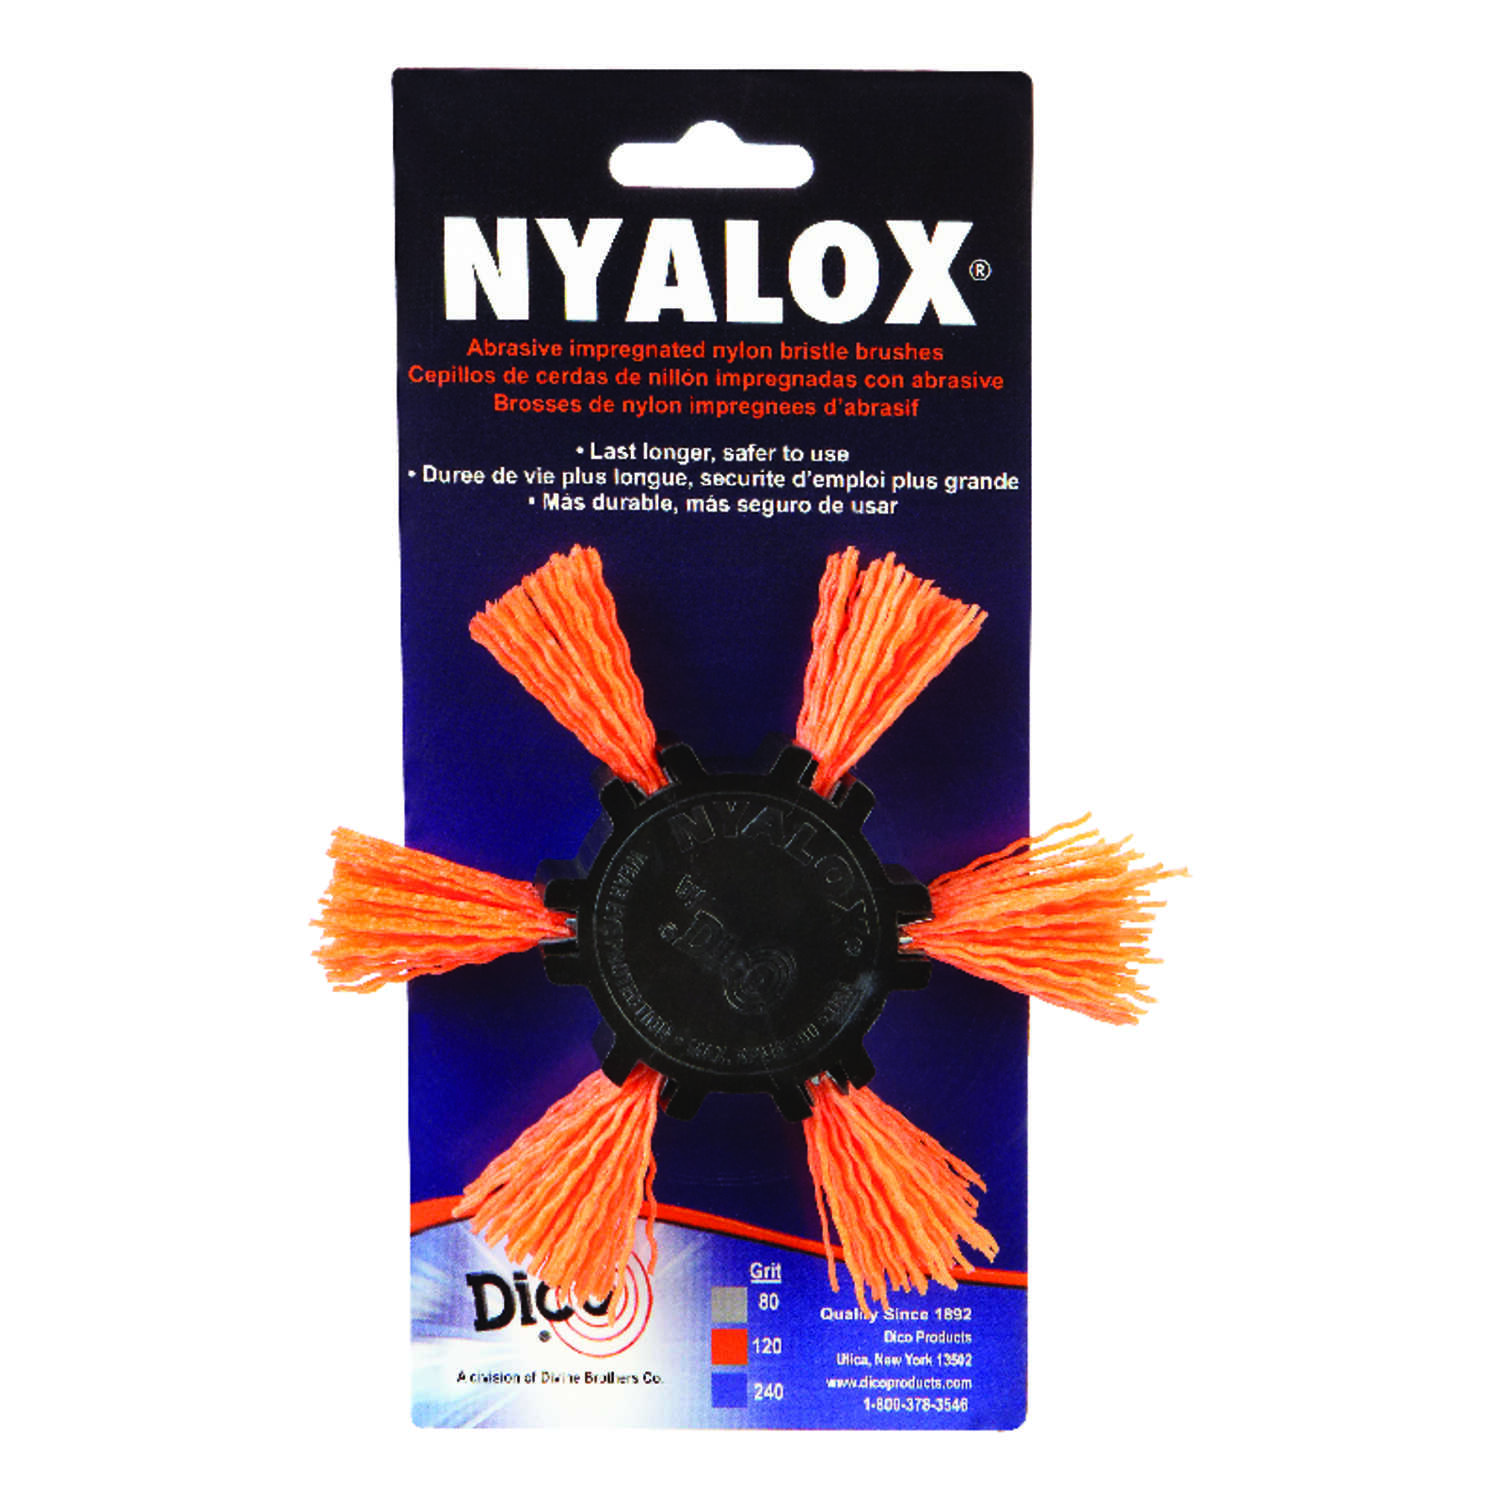 Dico  NYALOX  4 in. Dia. x 1/4 in.  Aluminum Oxide  Mandrel Mounted Flap Brush  120 Grit Medium  250